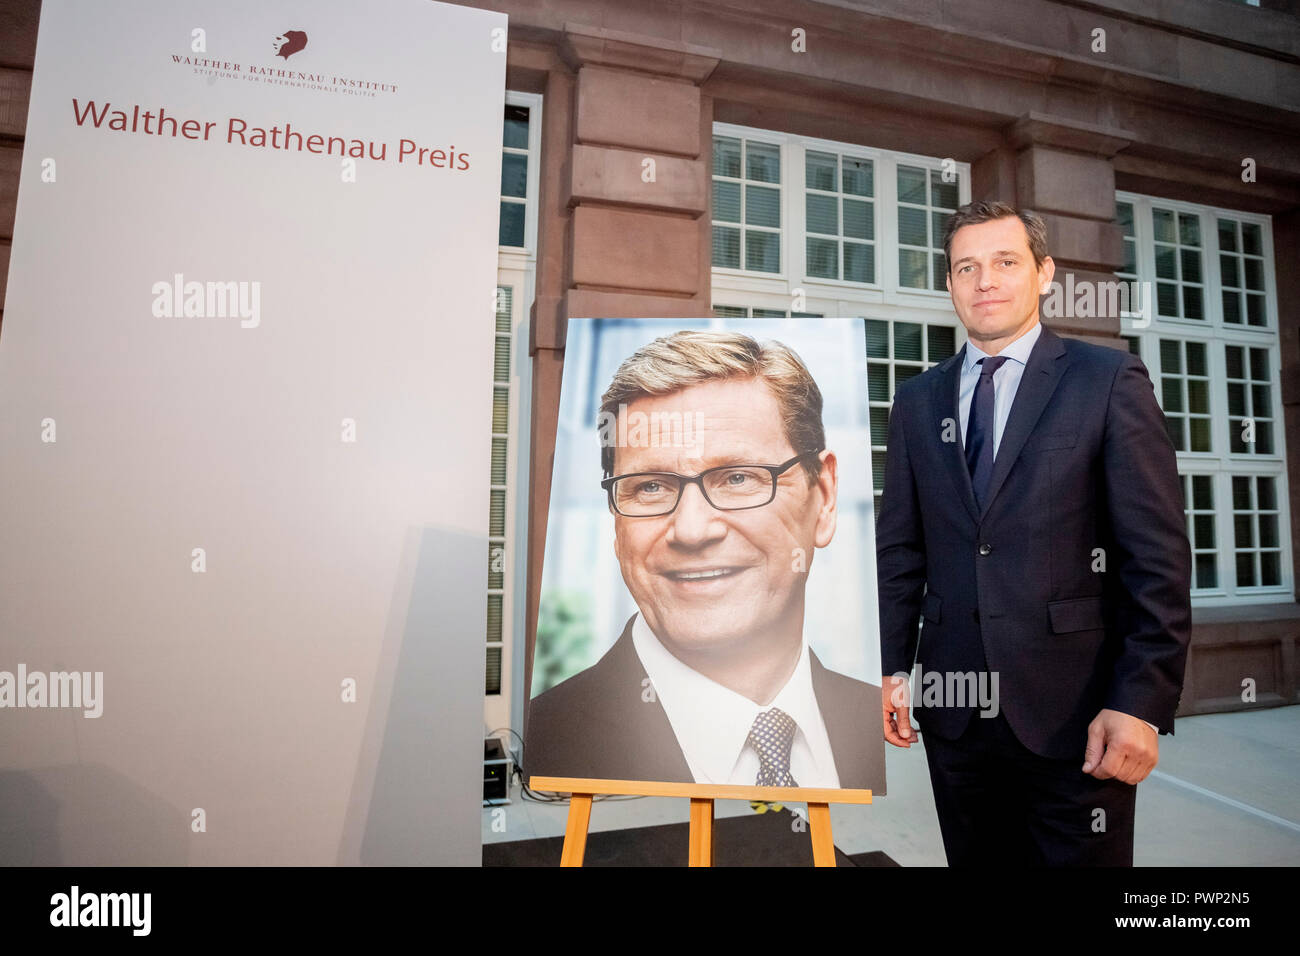 Berlin, Germany. 17th Oct, 2018. 17 October 2018, Germany, Berlin: Michael Mronz, life partner of the late Guido Westerwelle, stands next to a picture of Guido Westerwelle at the posthumous presentation of the Rathenau Prize 2018. Westerwelle is posthumously honoured by the Walther Rathenau Institute, Foundation for International Politics, 'for his work in the sense of a peaceful world order based on international understanding'. Credit: Christoph Soeder/dpa/Alamy Live News - Stock Image